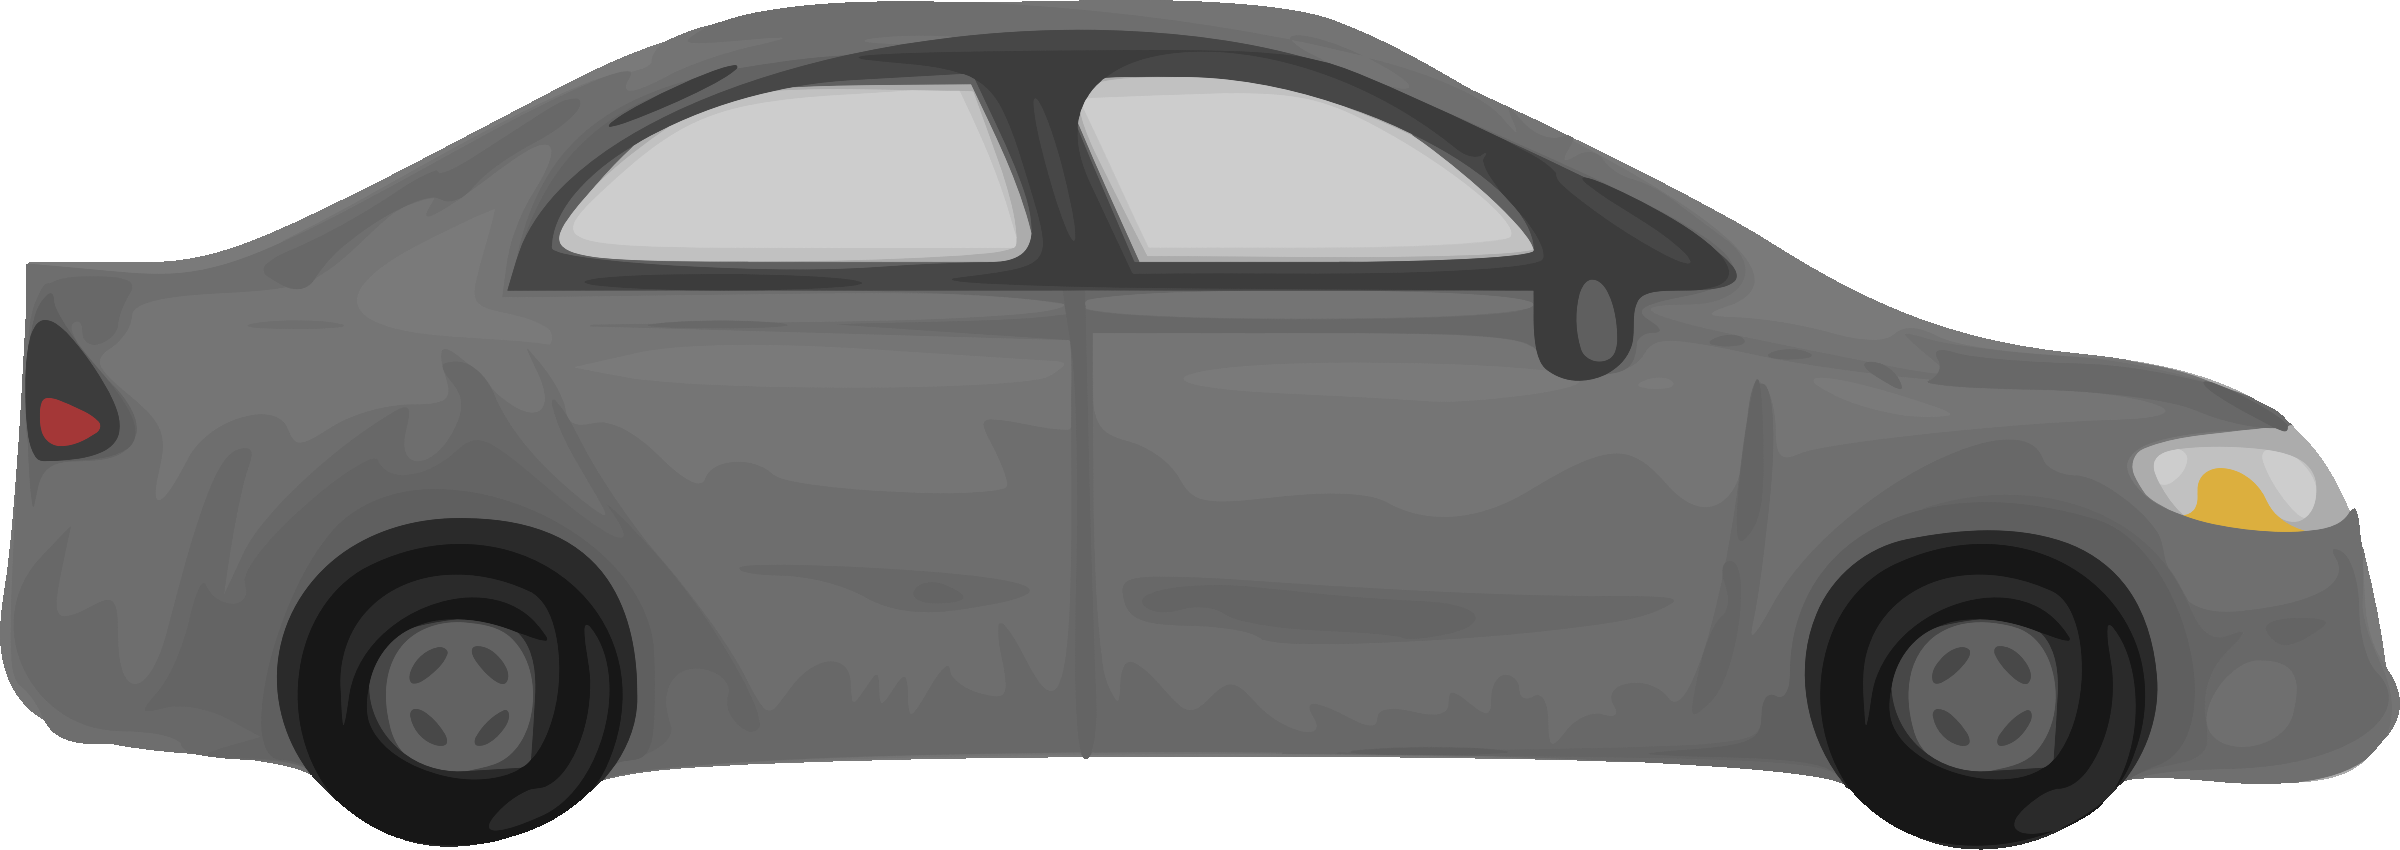 Car with hood open clipart png freeuse download Clipart - Rough car (grey) png freeuse download